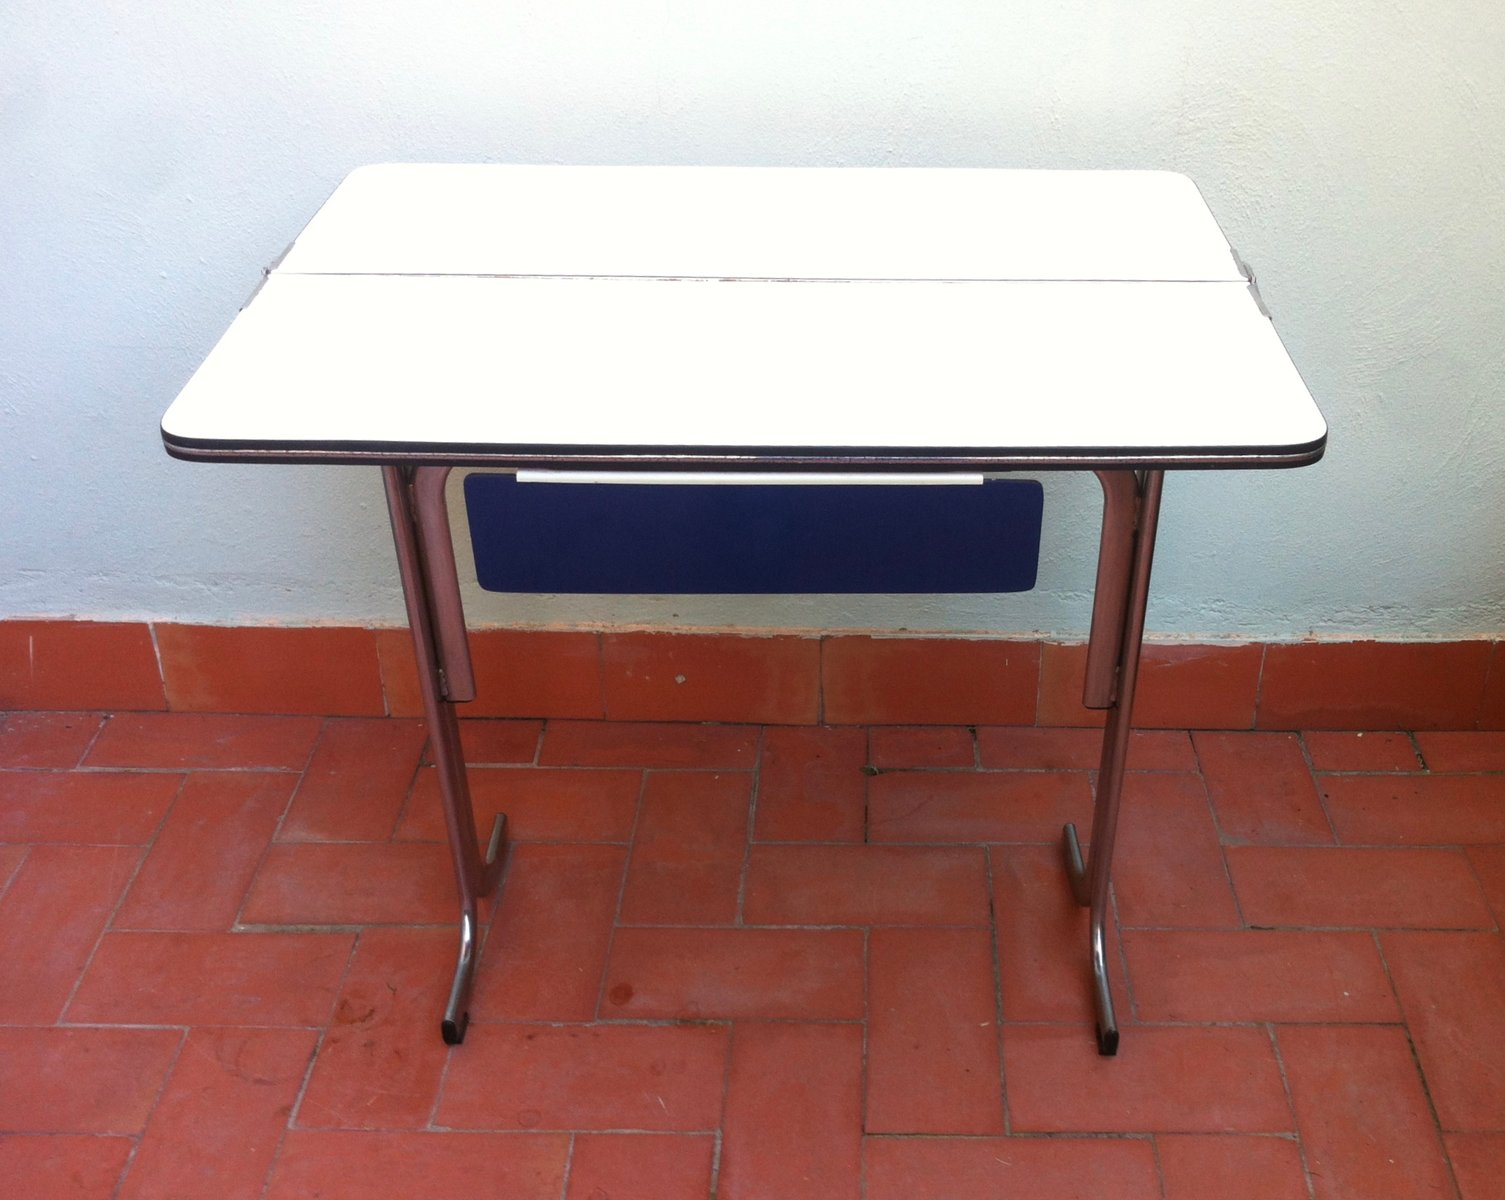 belgian formica folding kitchen table with drawer s 1 folding kitchen table Belgian Formica Folding Kitchen Table with Drawer s for sale at Pamono